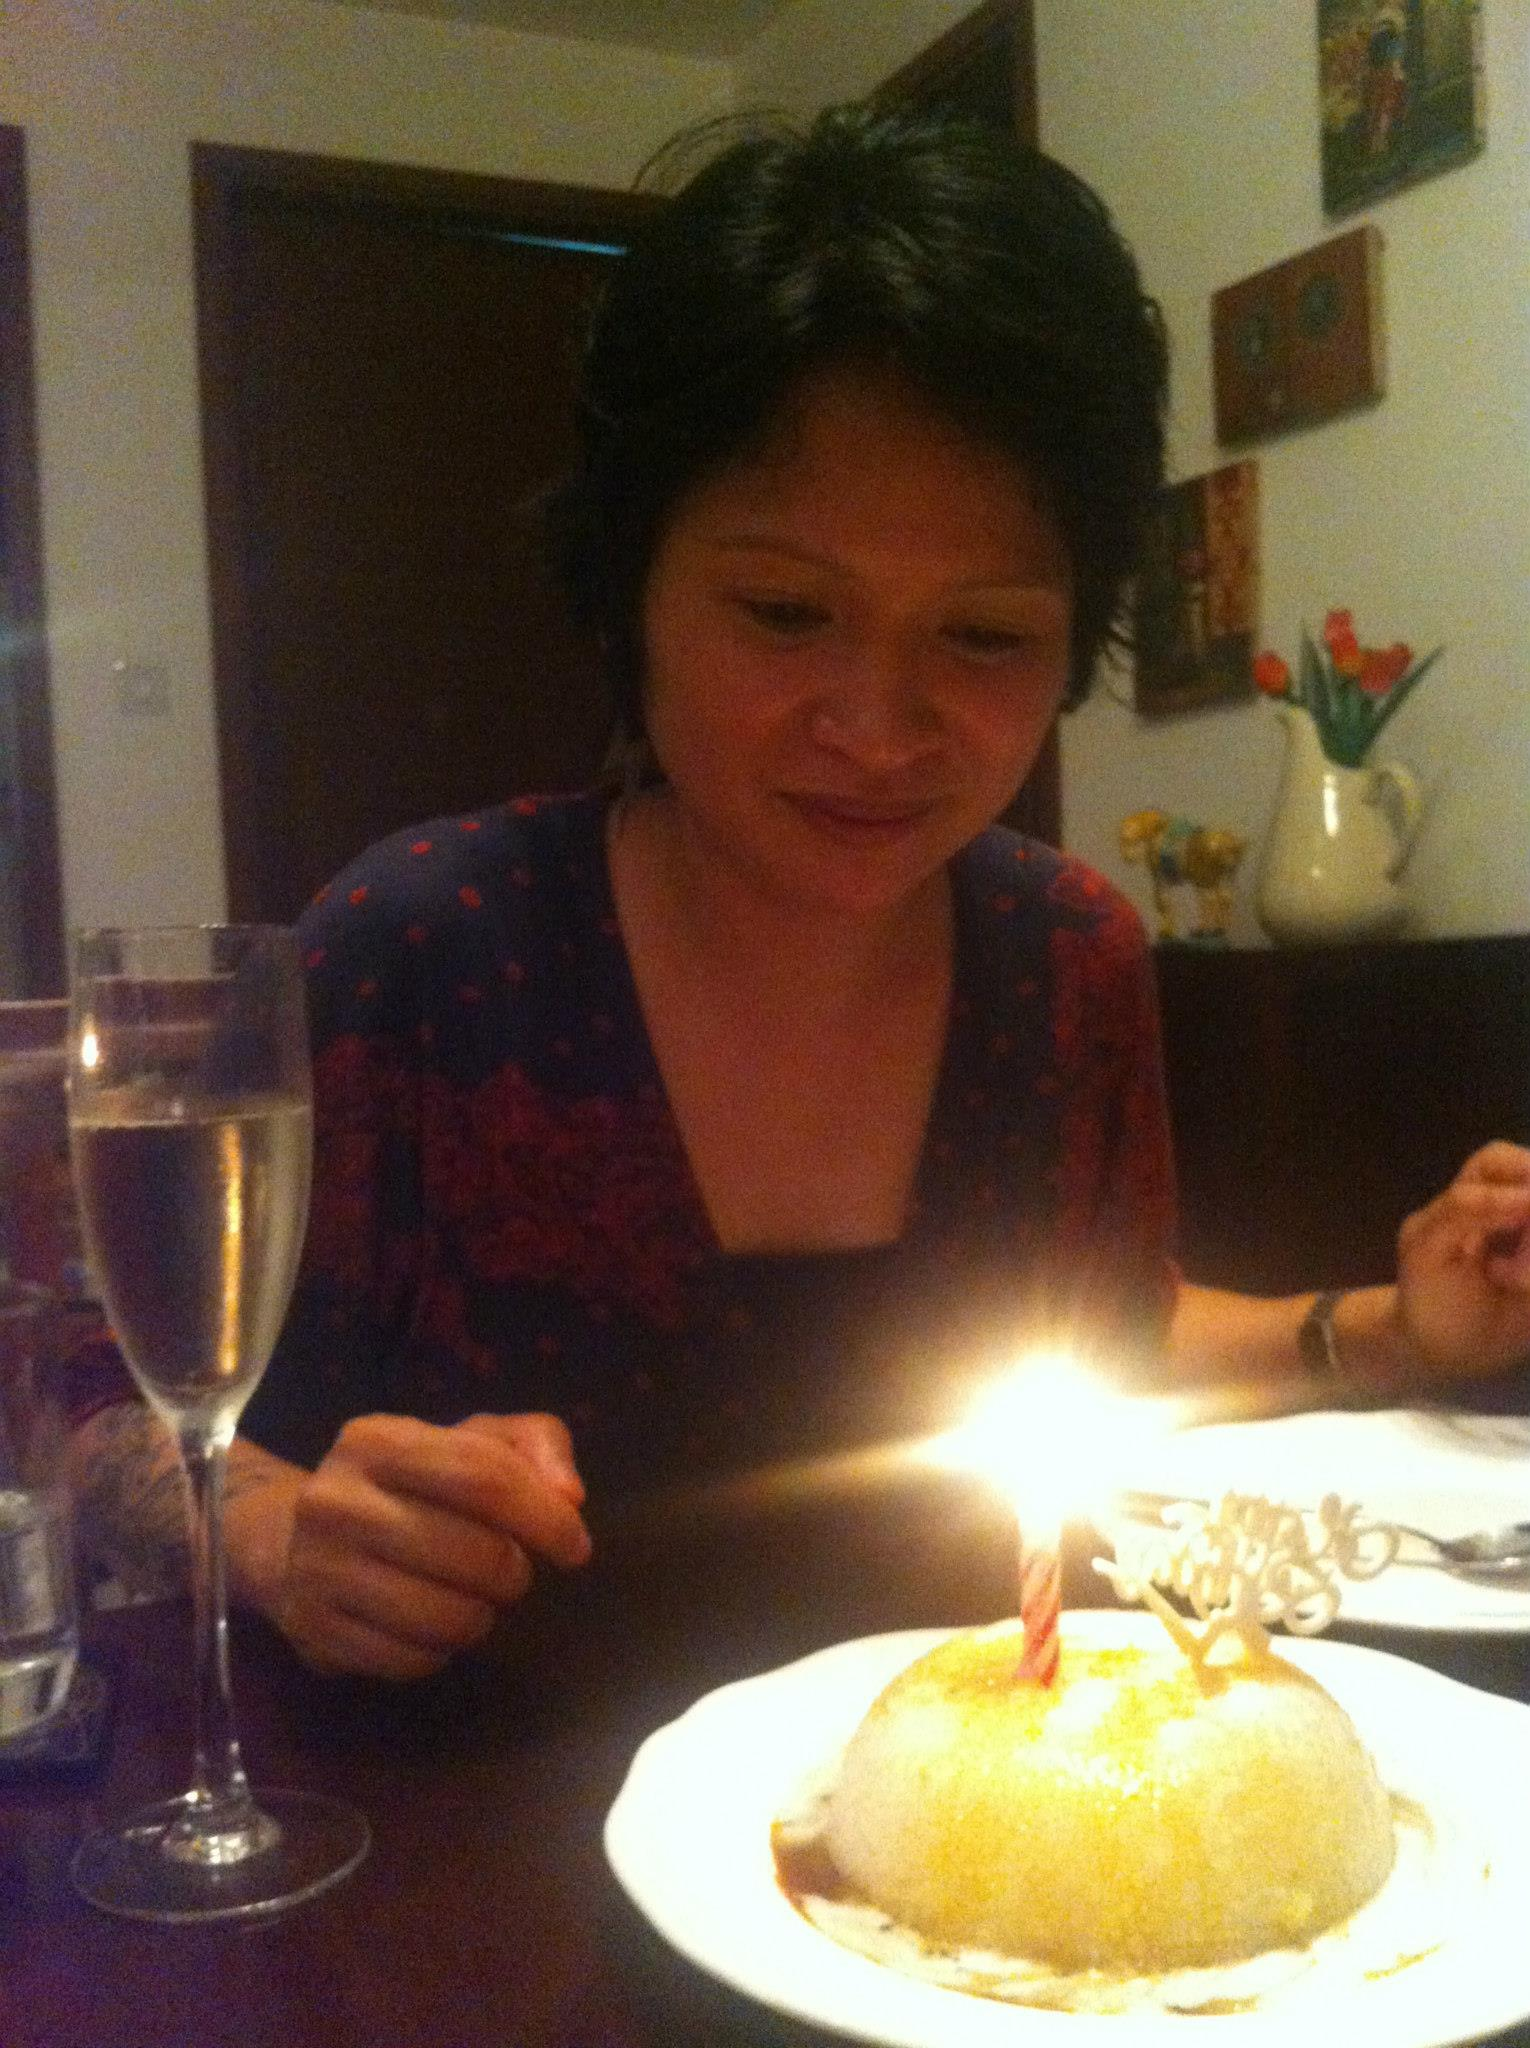 Lyra having a Birthday dinner prepped by flatmates in Singapore.